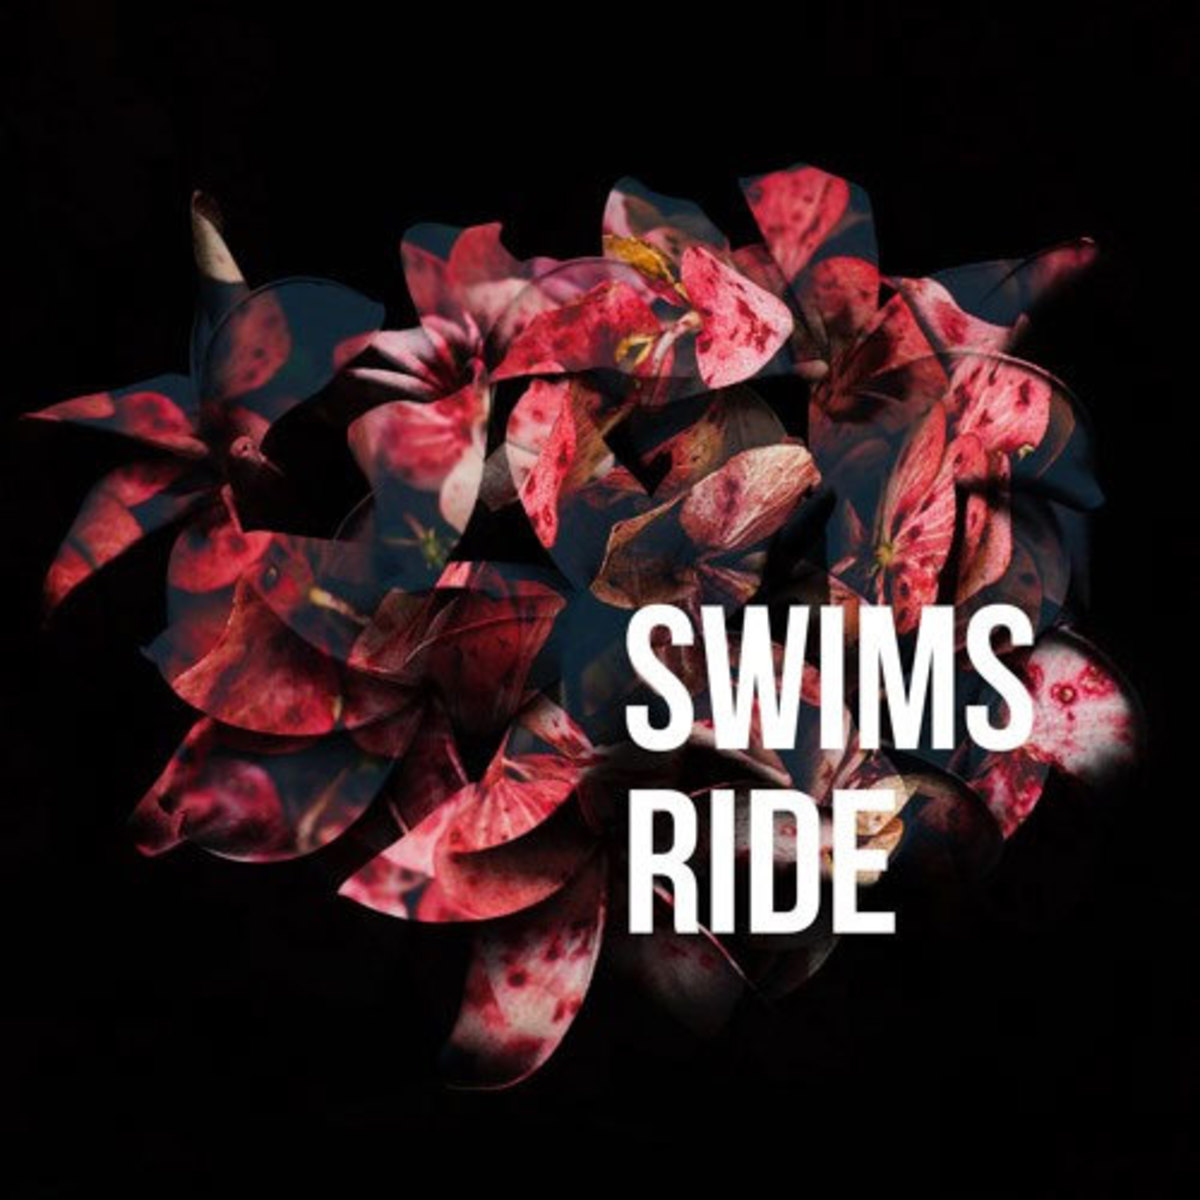 swims-ride.jpg